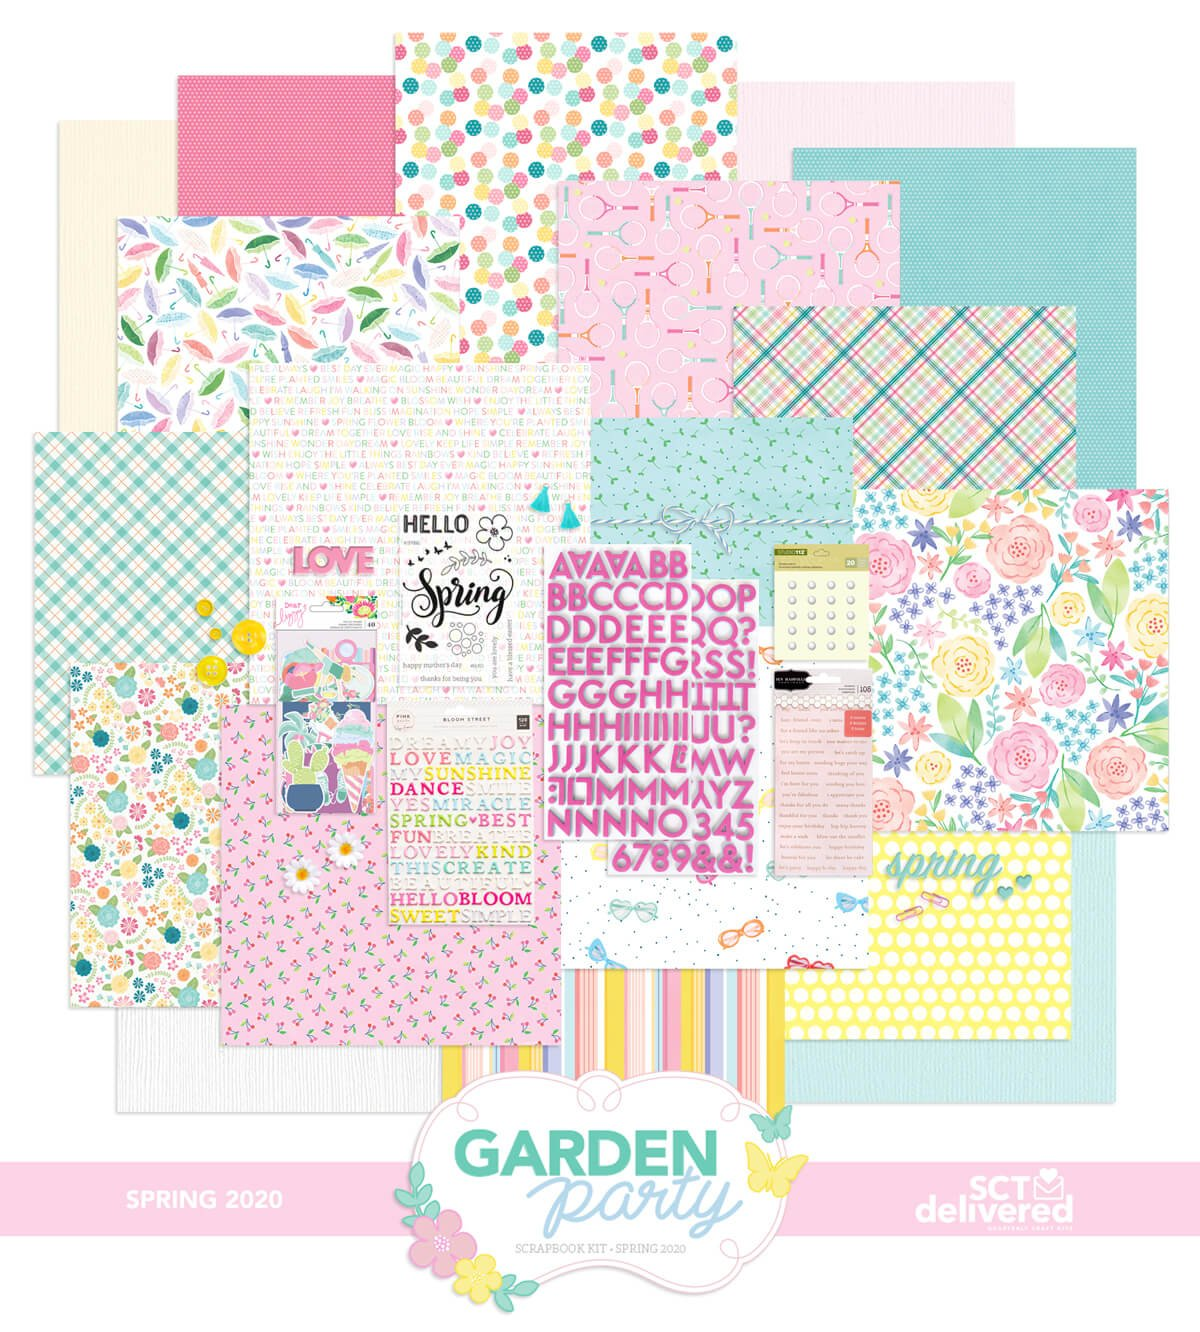 Scrapbook & Cards Today - SCT Delivered Scrapbook Kit - Garden Party